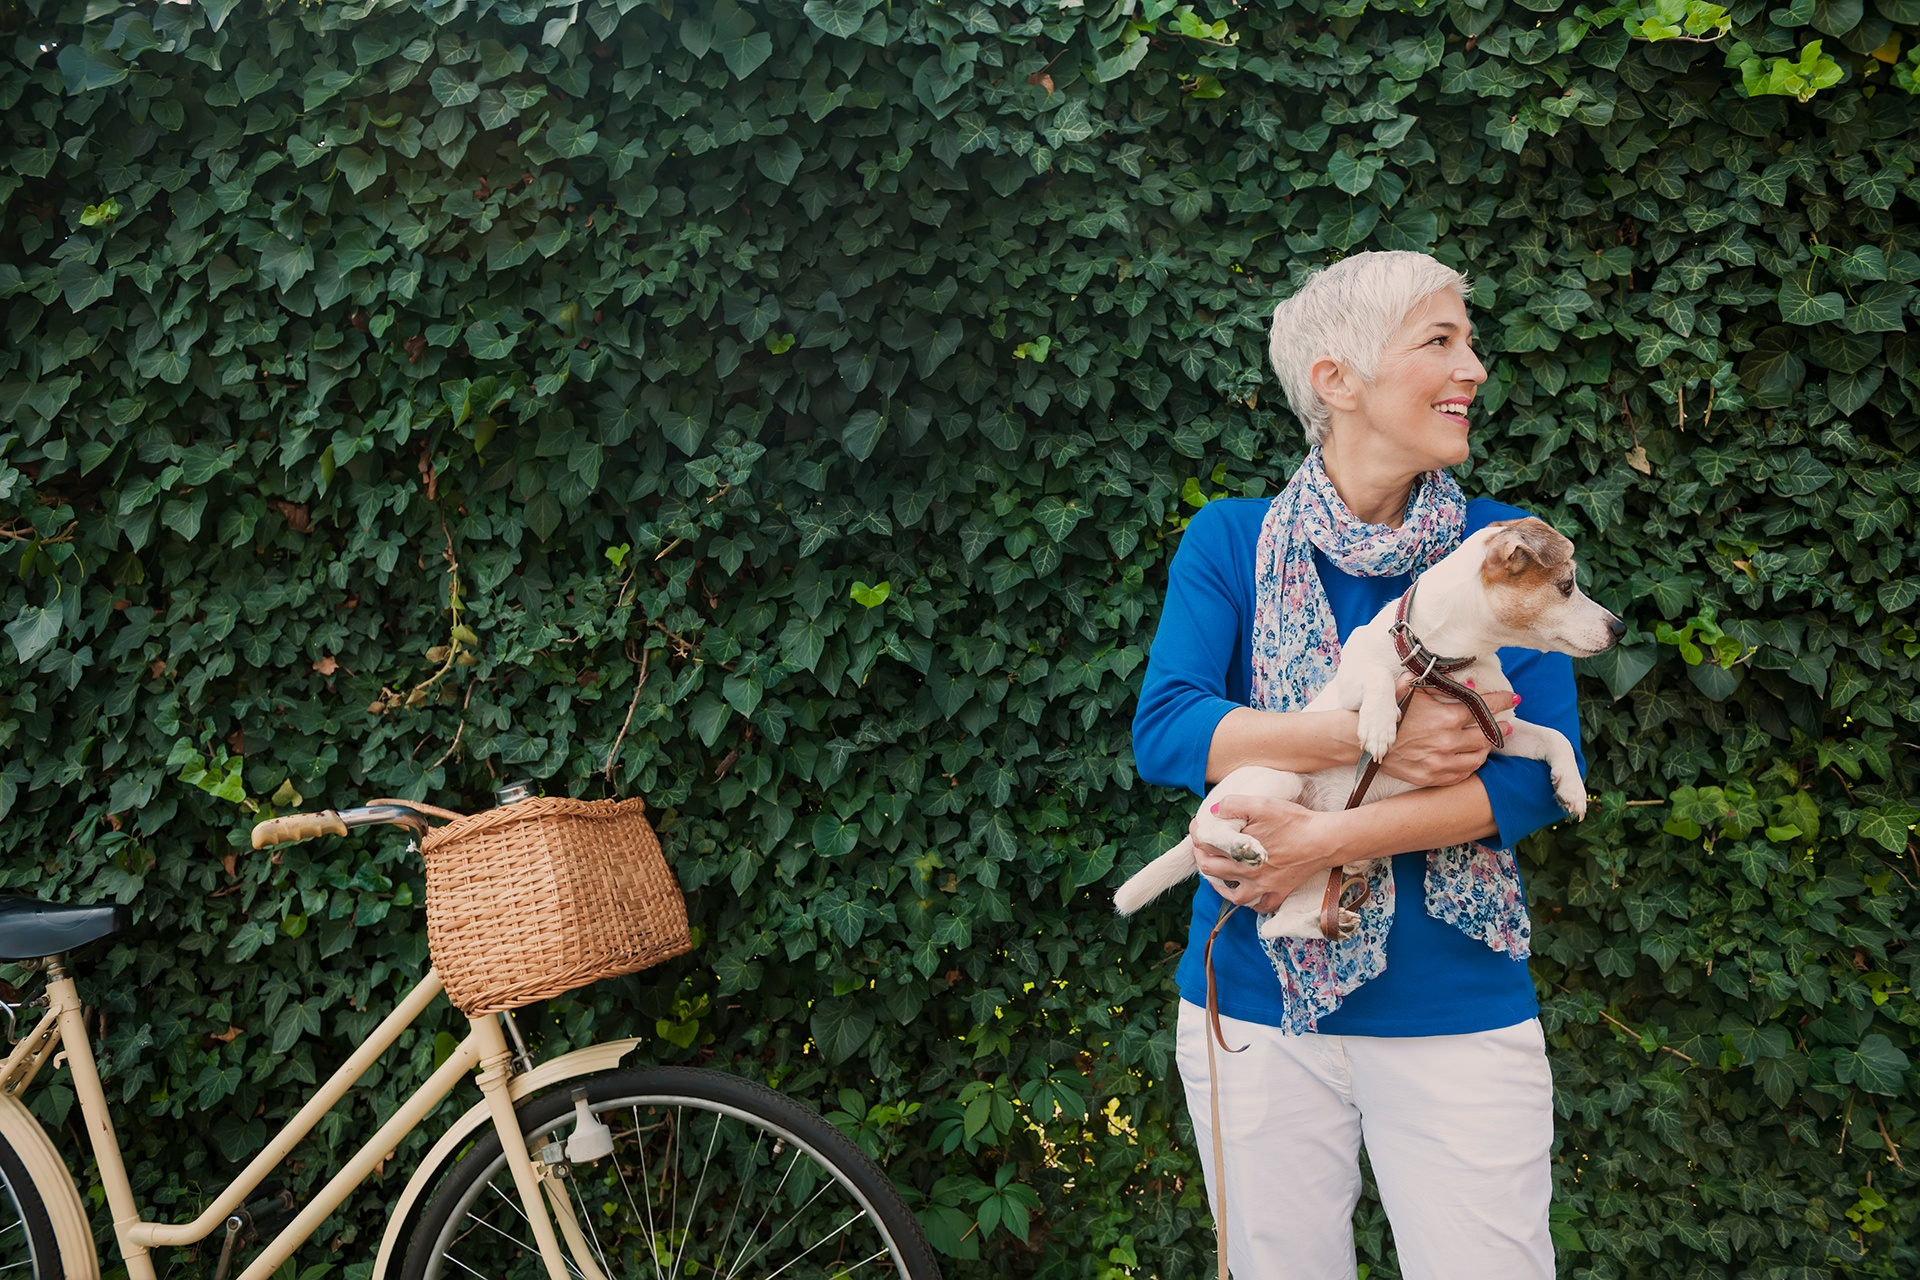 Protecting Fido – planning for the future care of your pet